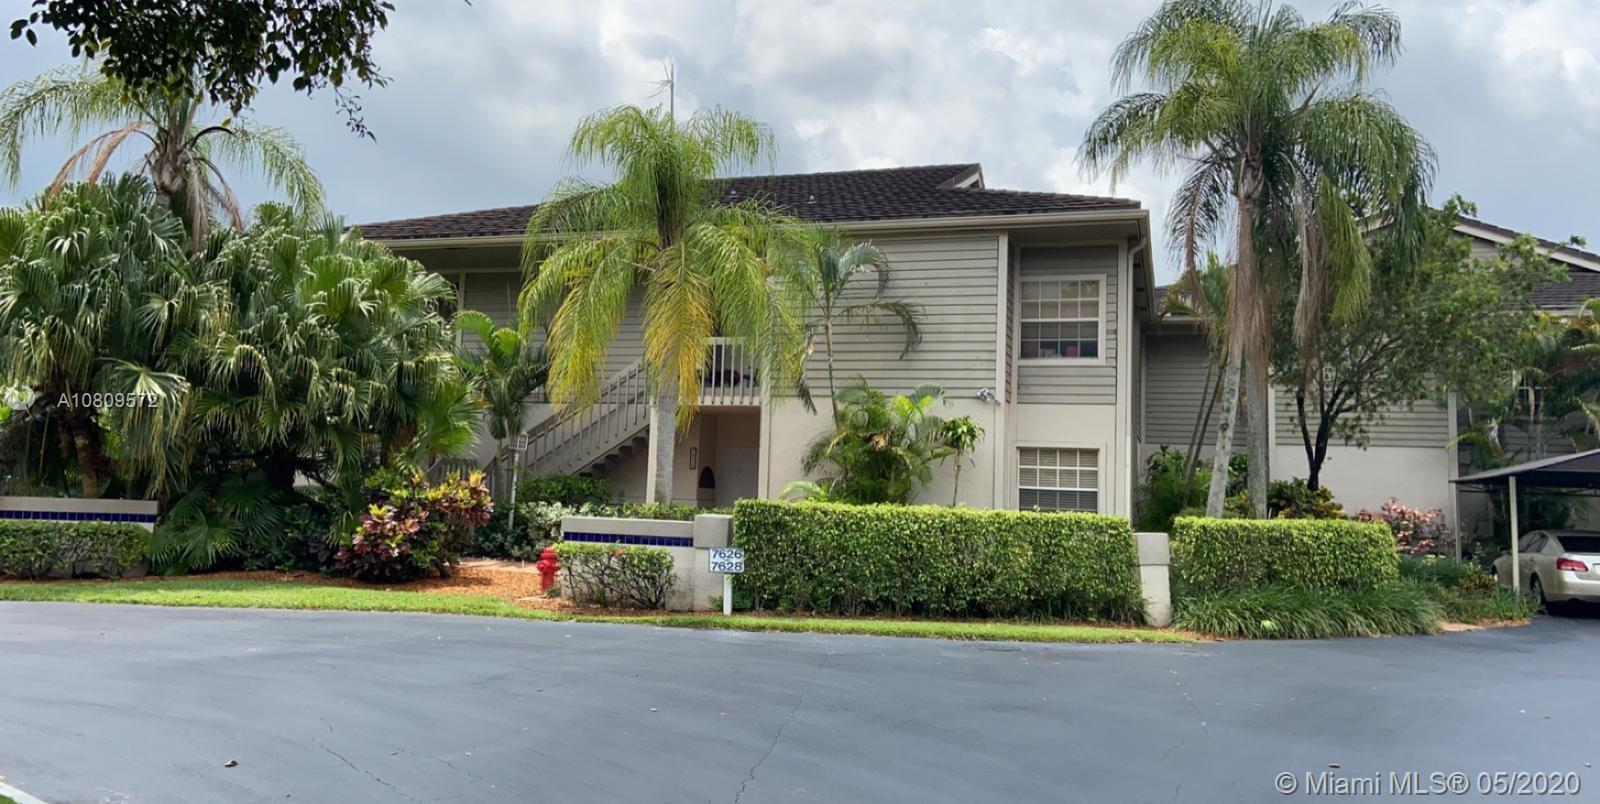 BEST PRICE CONDO AT  SOUTHWINDS IN BOCA POINTE. LUXURIOUS CORNER UNIT WITH WRAP AROUND SCREENED IN